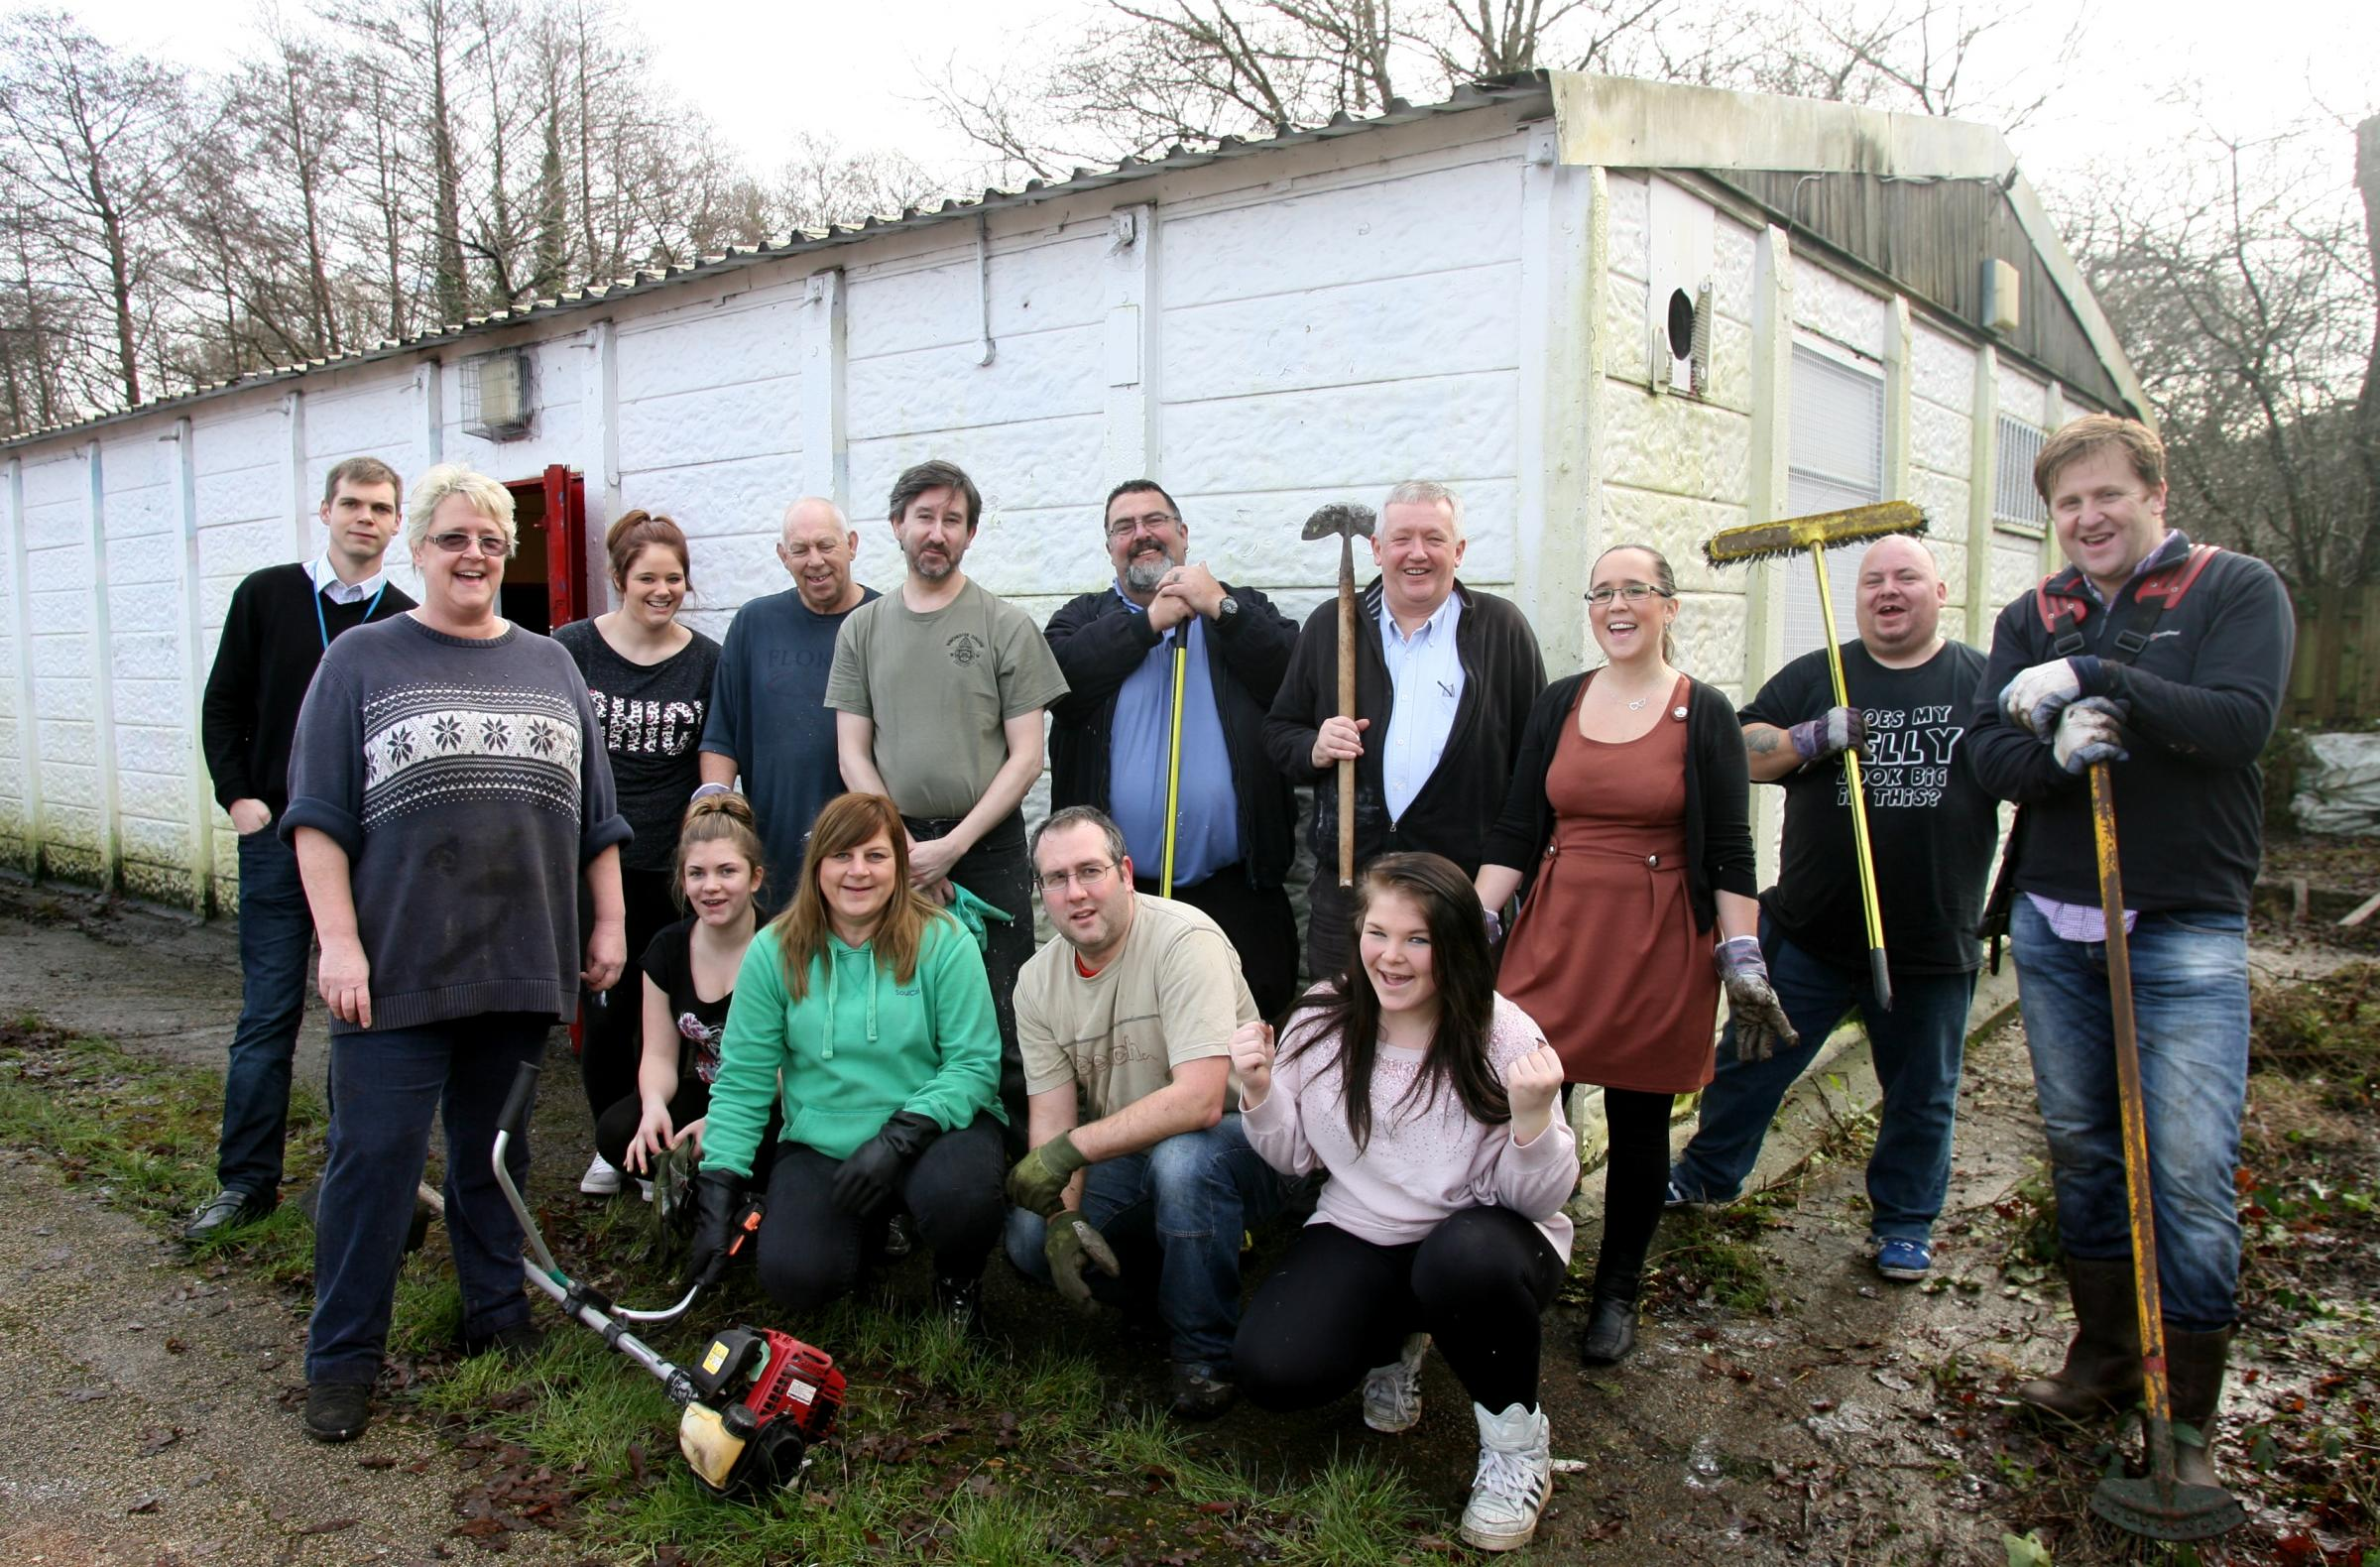 Volunteers refurbishing the Venney Centre in Coxford, with Kate Bulpit, front left.